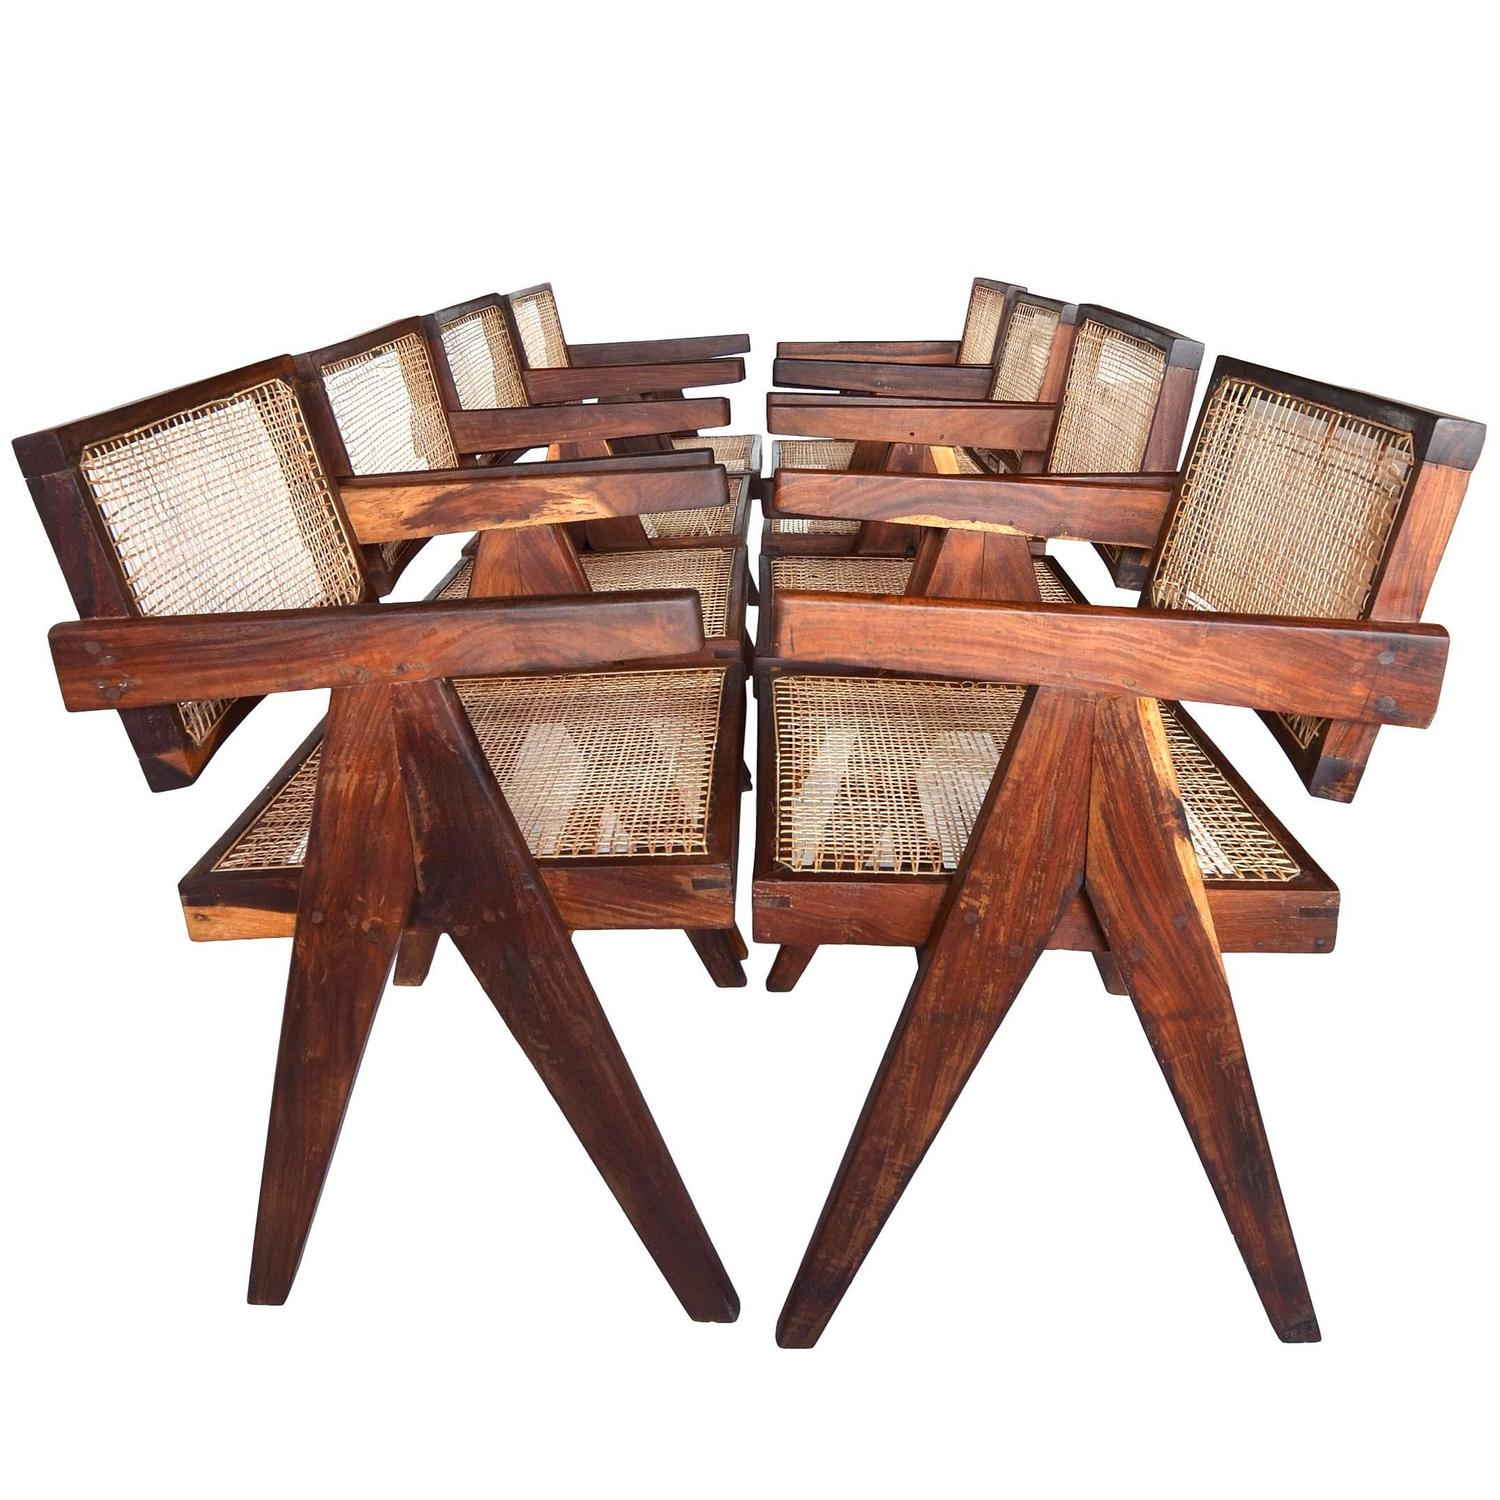 Pierre jeanneret furniture chairs sofas tables & more 106 for